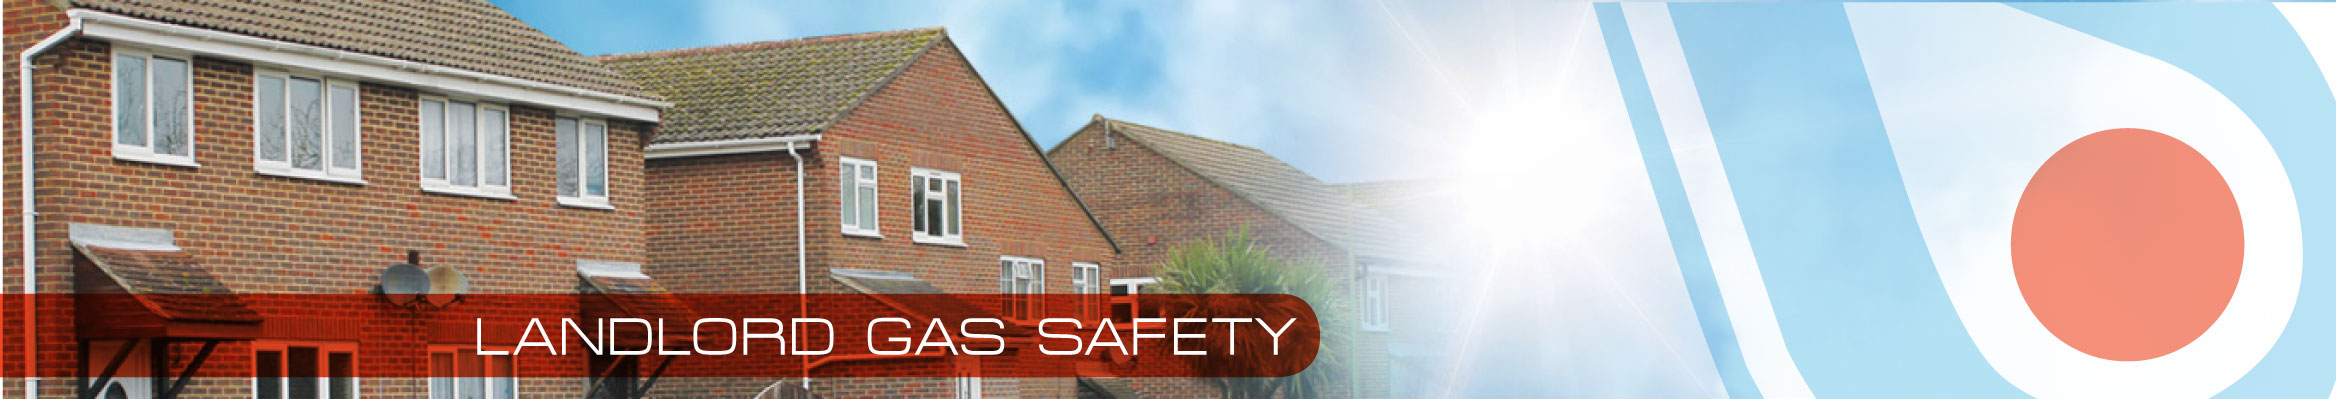 Landlord Gas Safety Berkshire